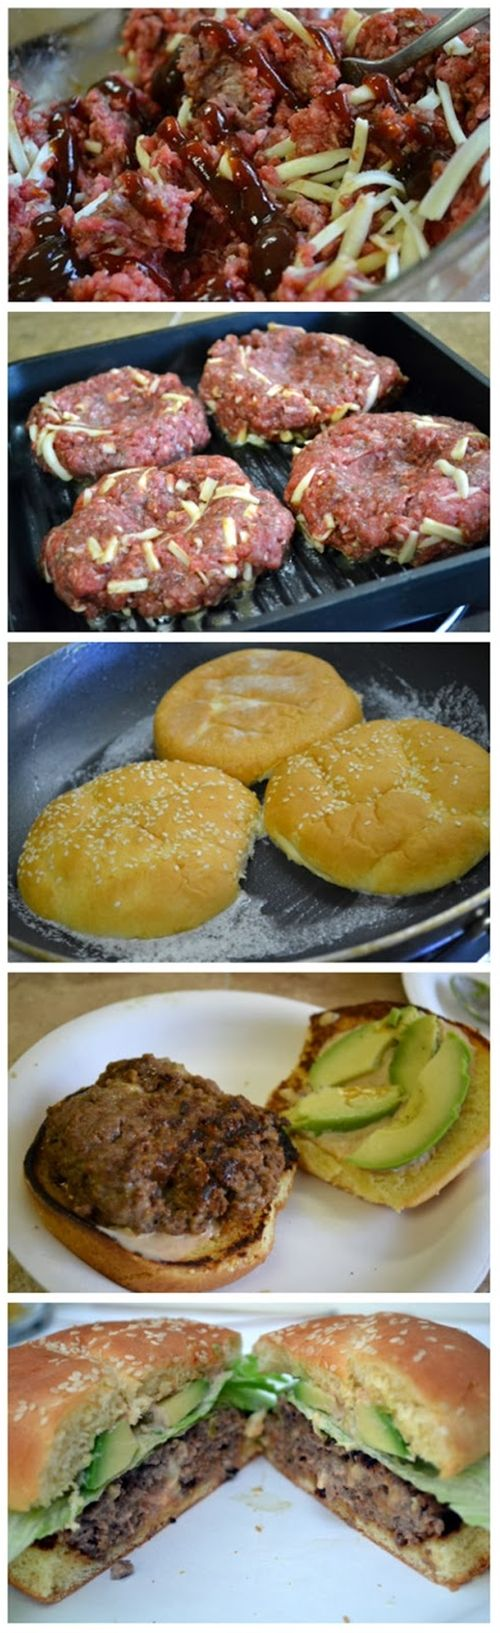 """KEEP -- """"I didn't want to buy any processed burger patties from the store so I made my own using this recipe and it was yummy! I was worried about the reviews of them falling apart, so I only used 2 TBSP of BBQ sauce and they turned out perfect! I cooked each side for about 6 mins on a grill pan. Definitely will be making this again! - MJ"""" -- Quick & Easy Homemade Burger Patties"""